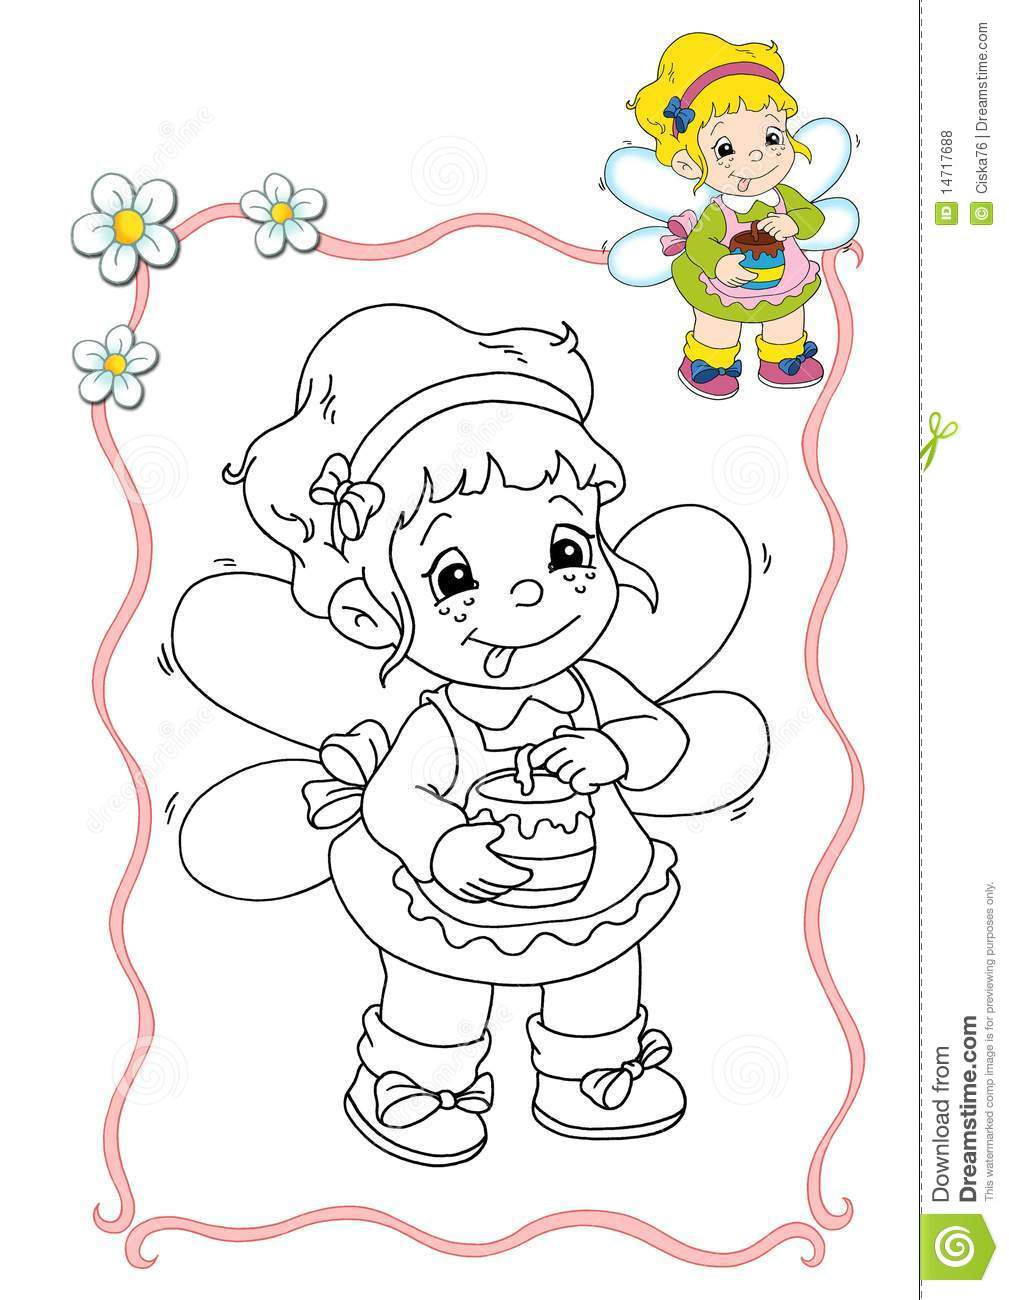 Coloring book - fairy 9